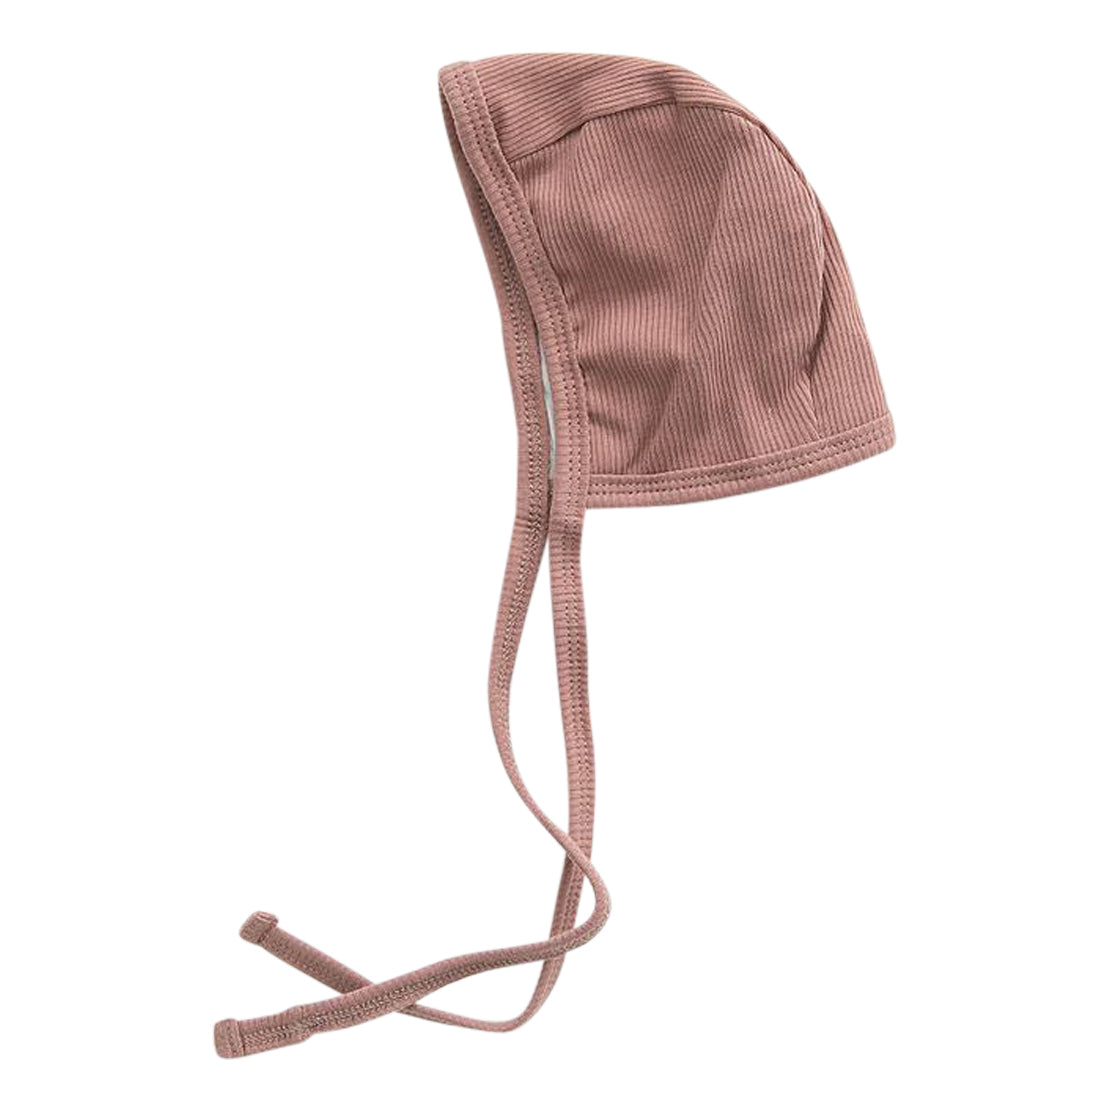 Dusty Rose Organic Cotton Ribbed Bonnet